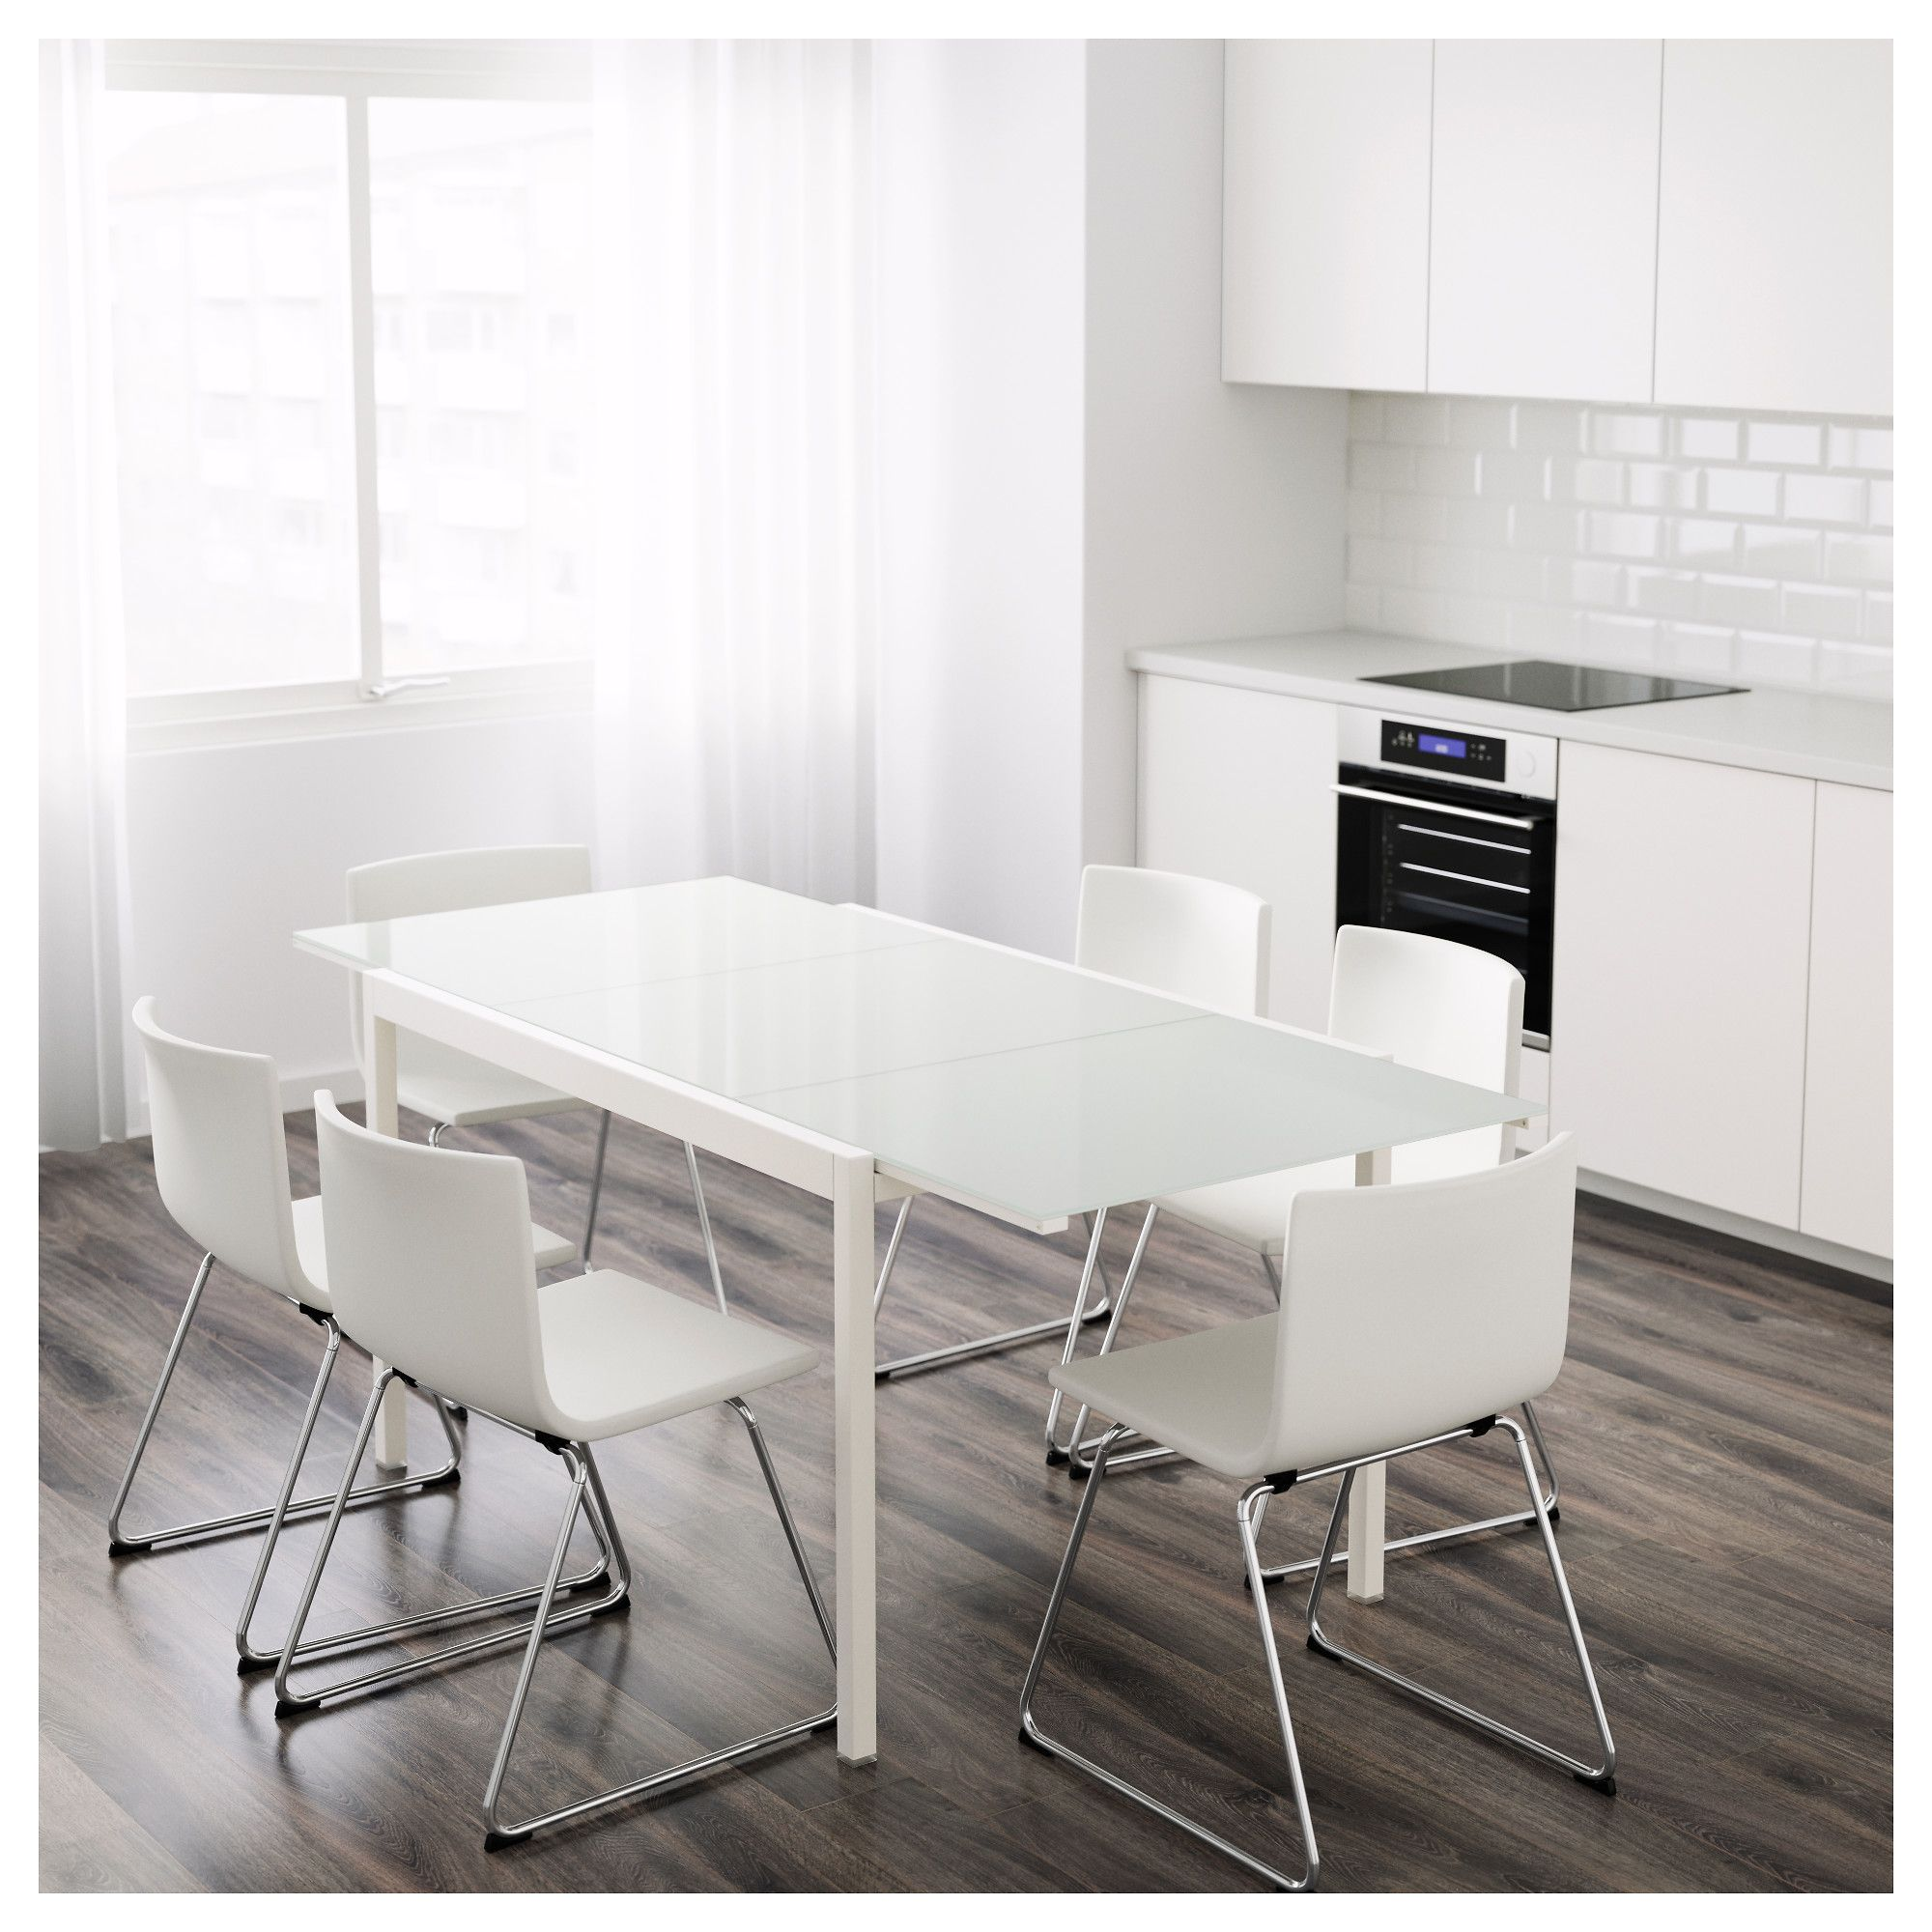 Furniture And Home Furnishings Glass Dinning Table Dining Table